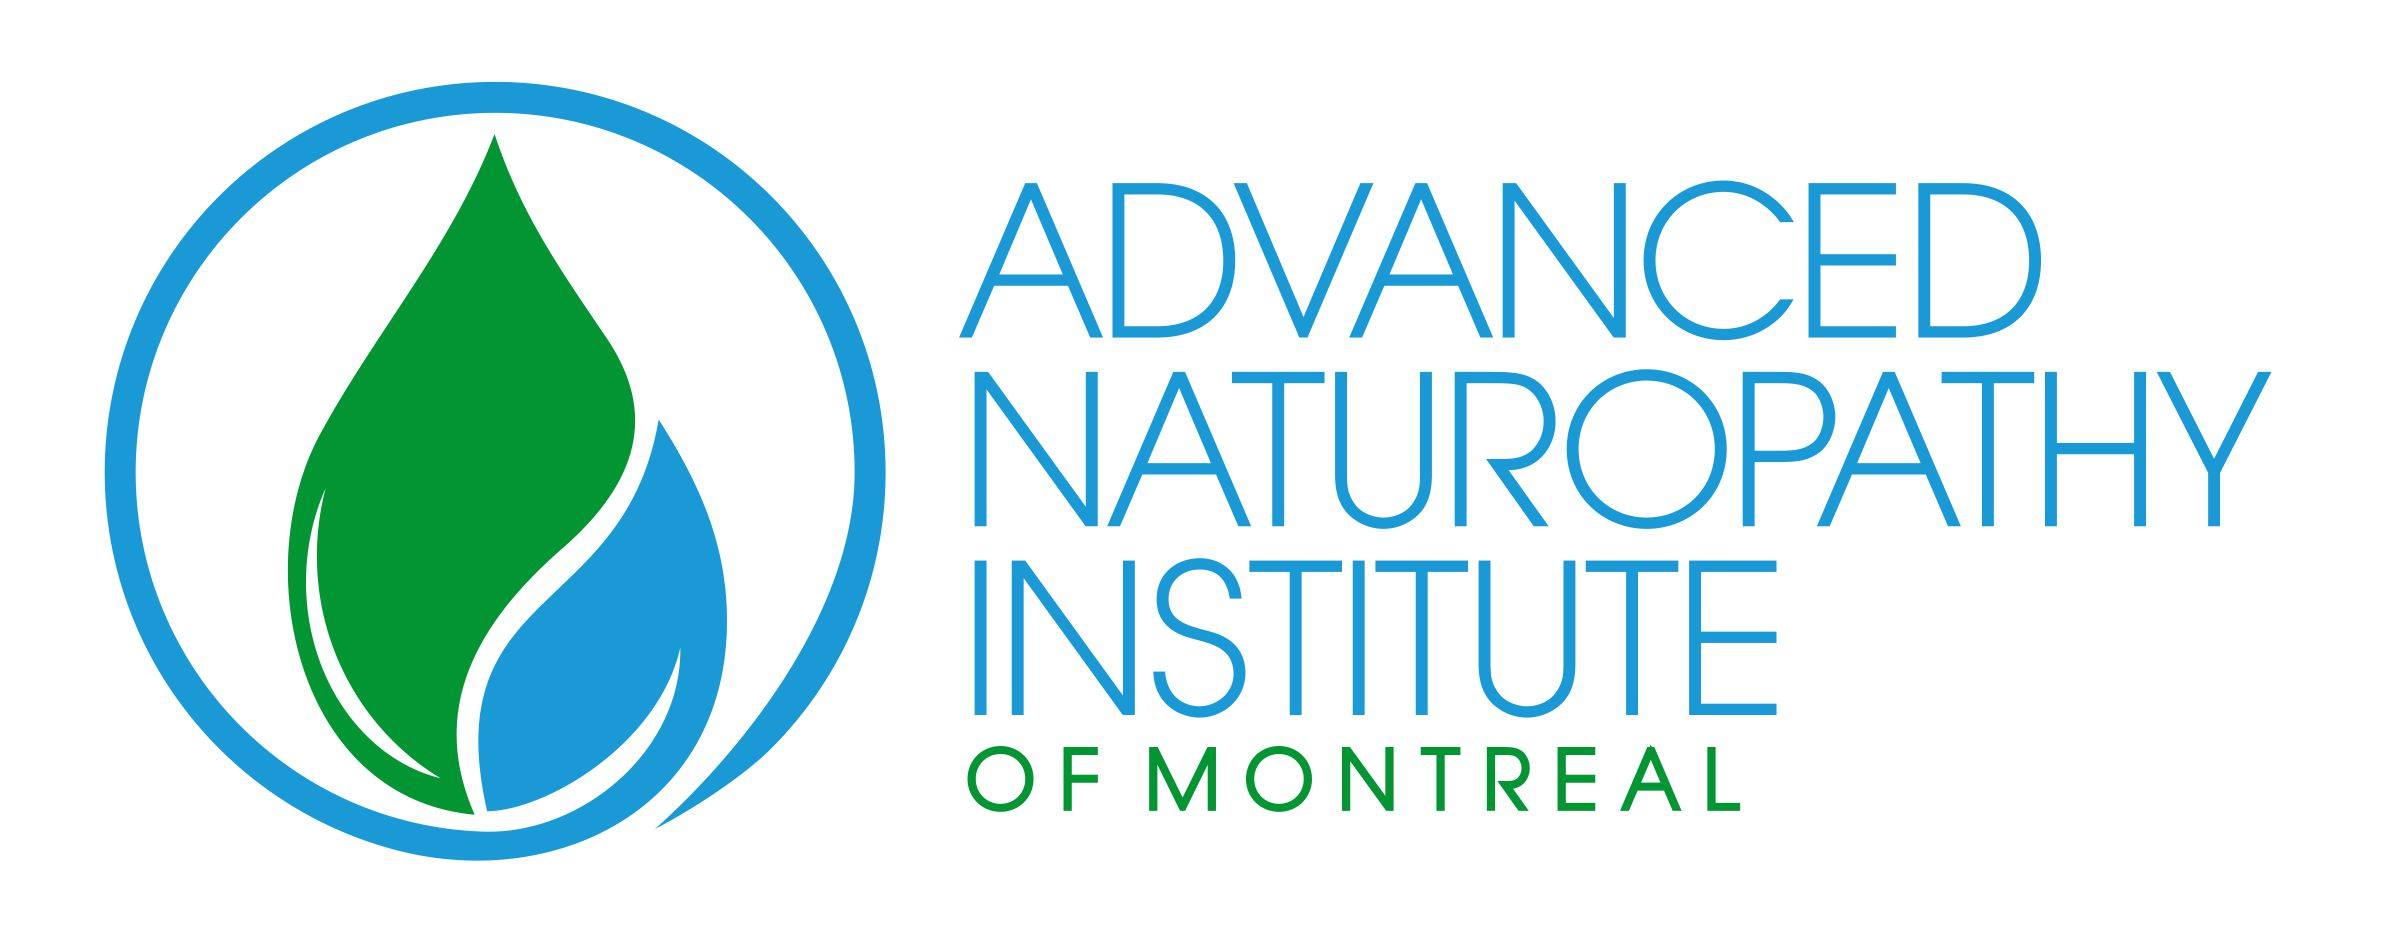 Advanced Naturopathy Institute of Montreal